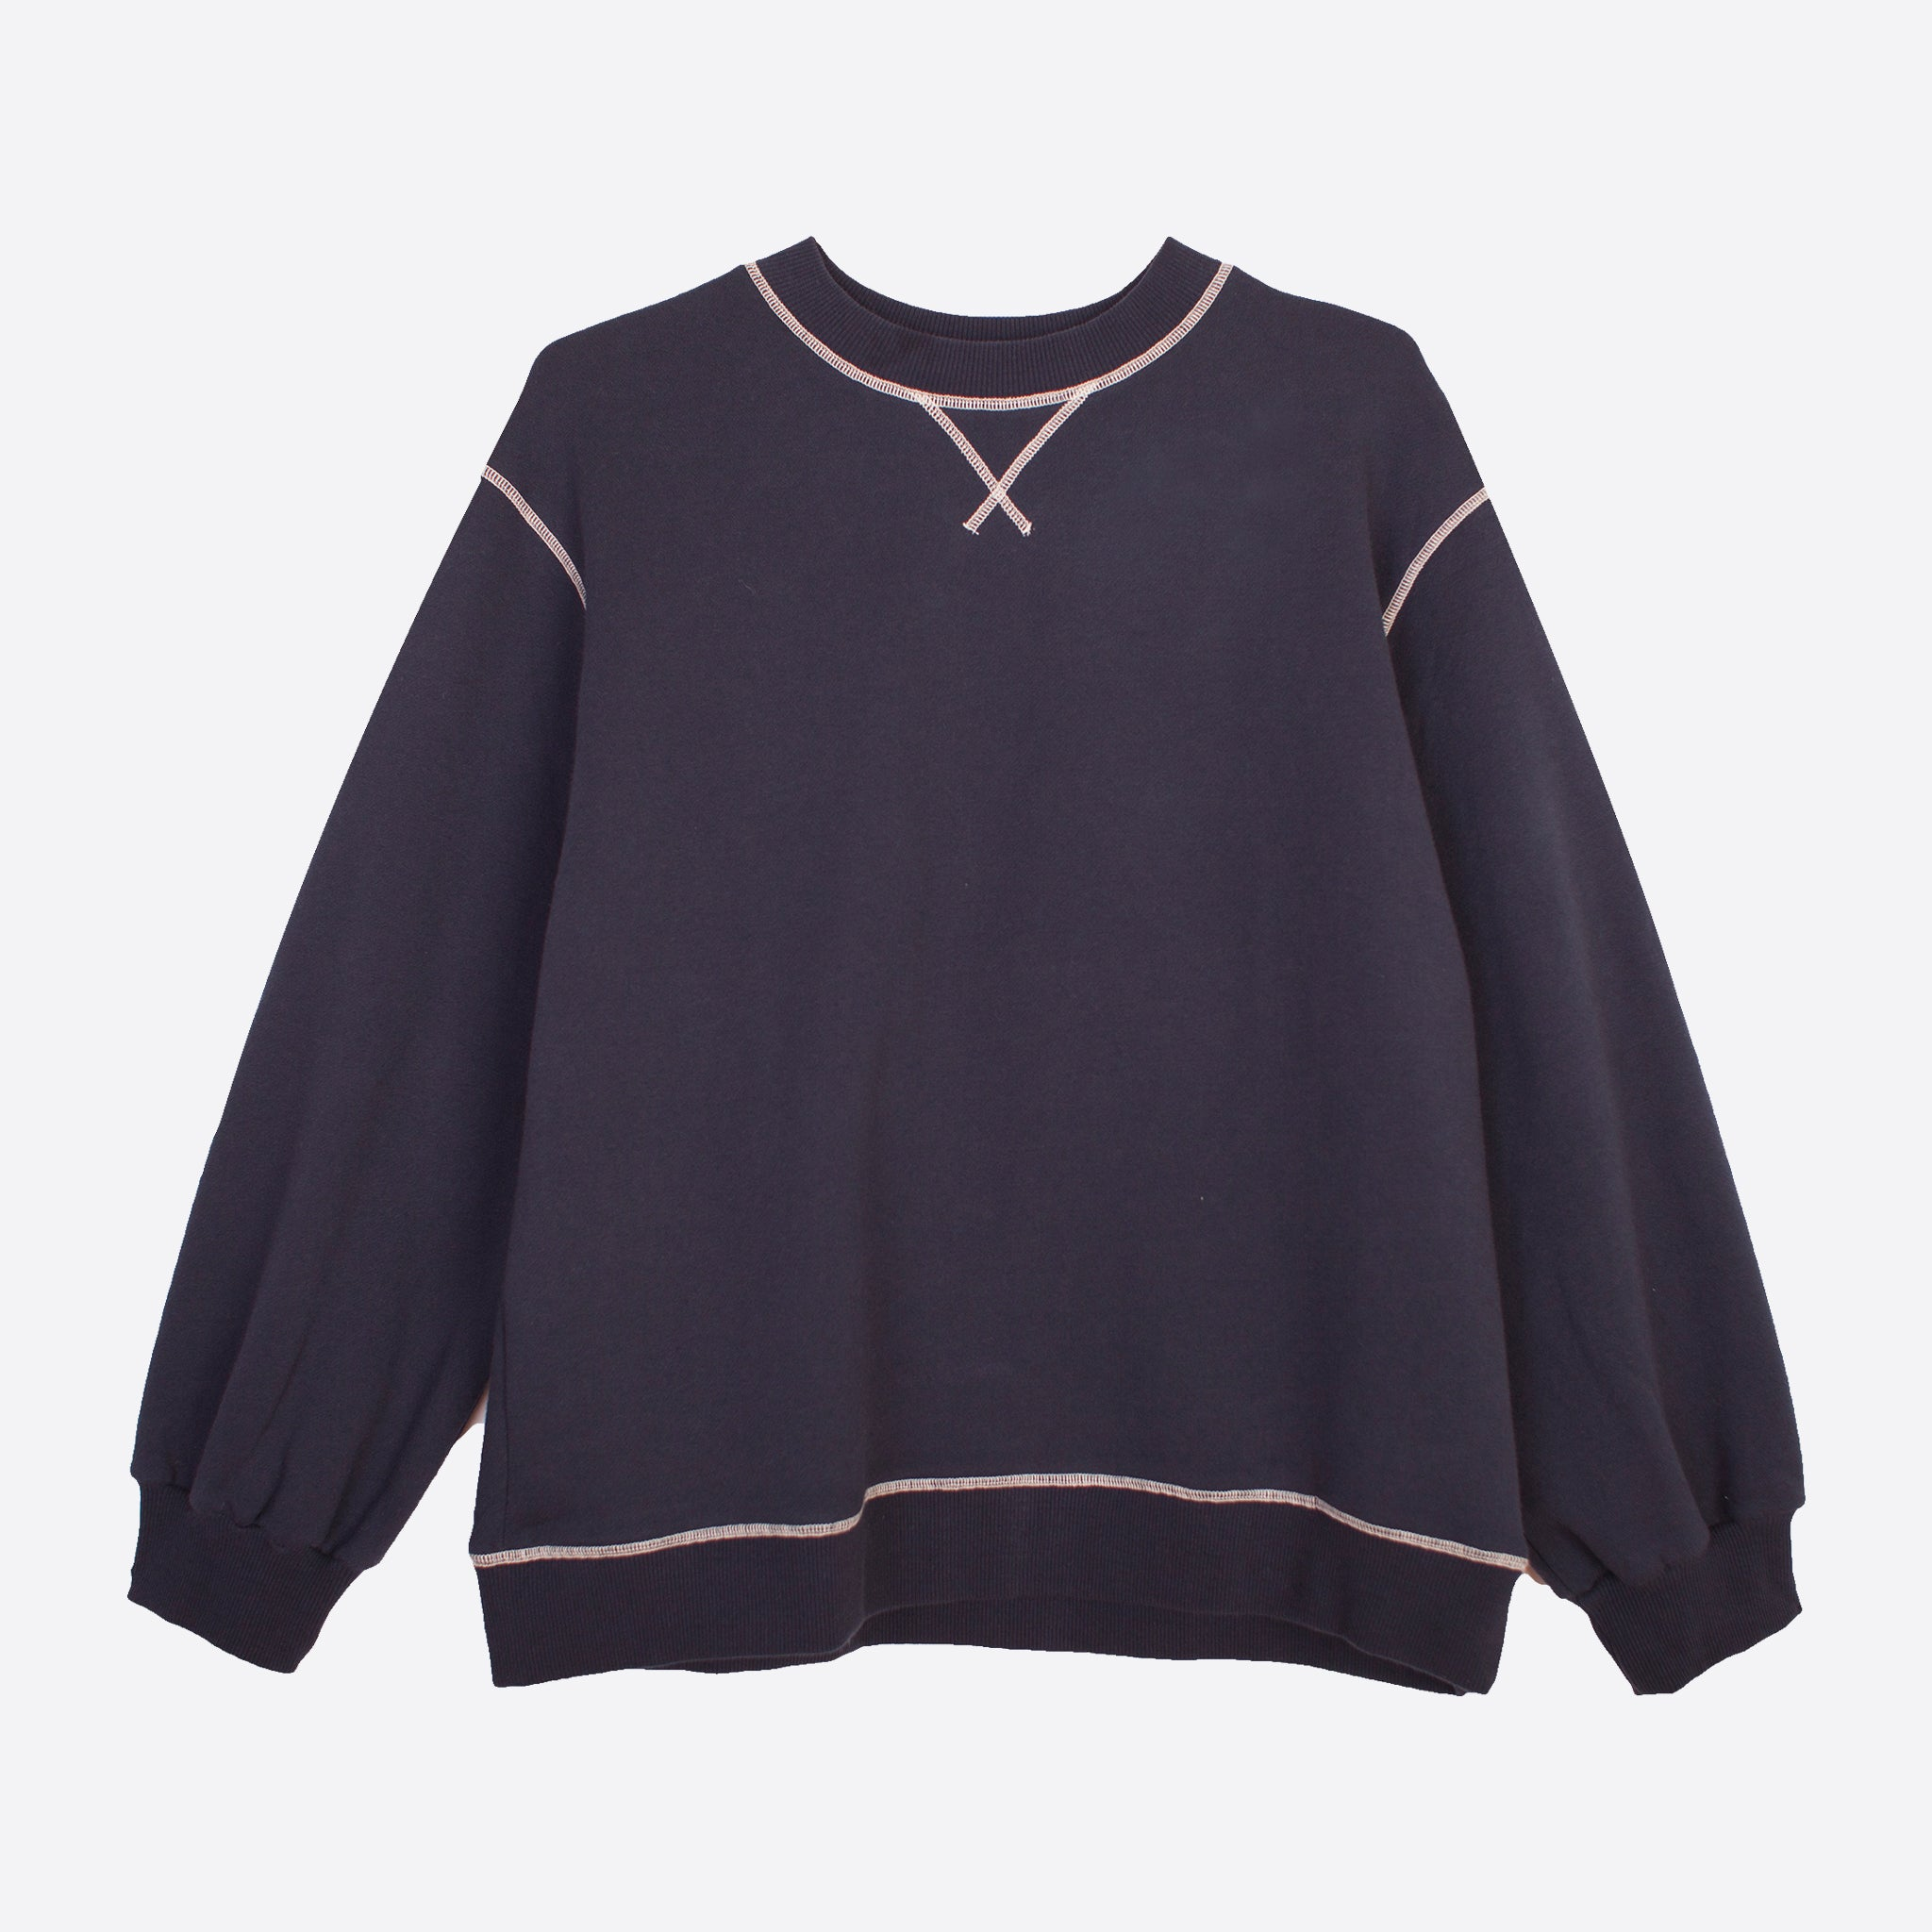 LF Markey Thierry Sweatshirt in Navy